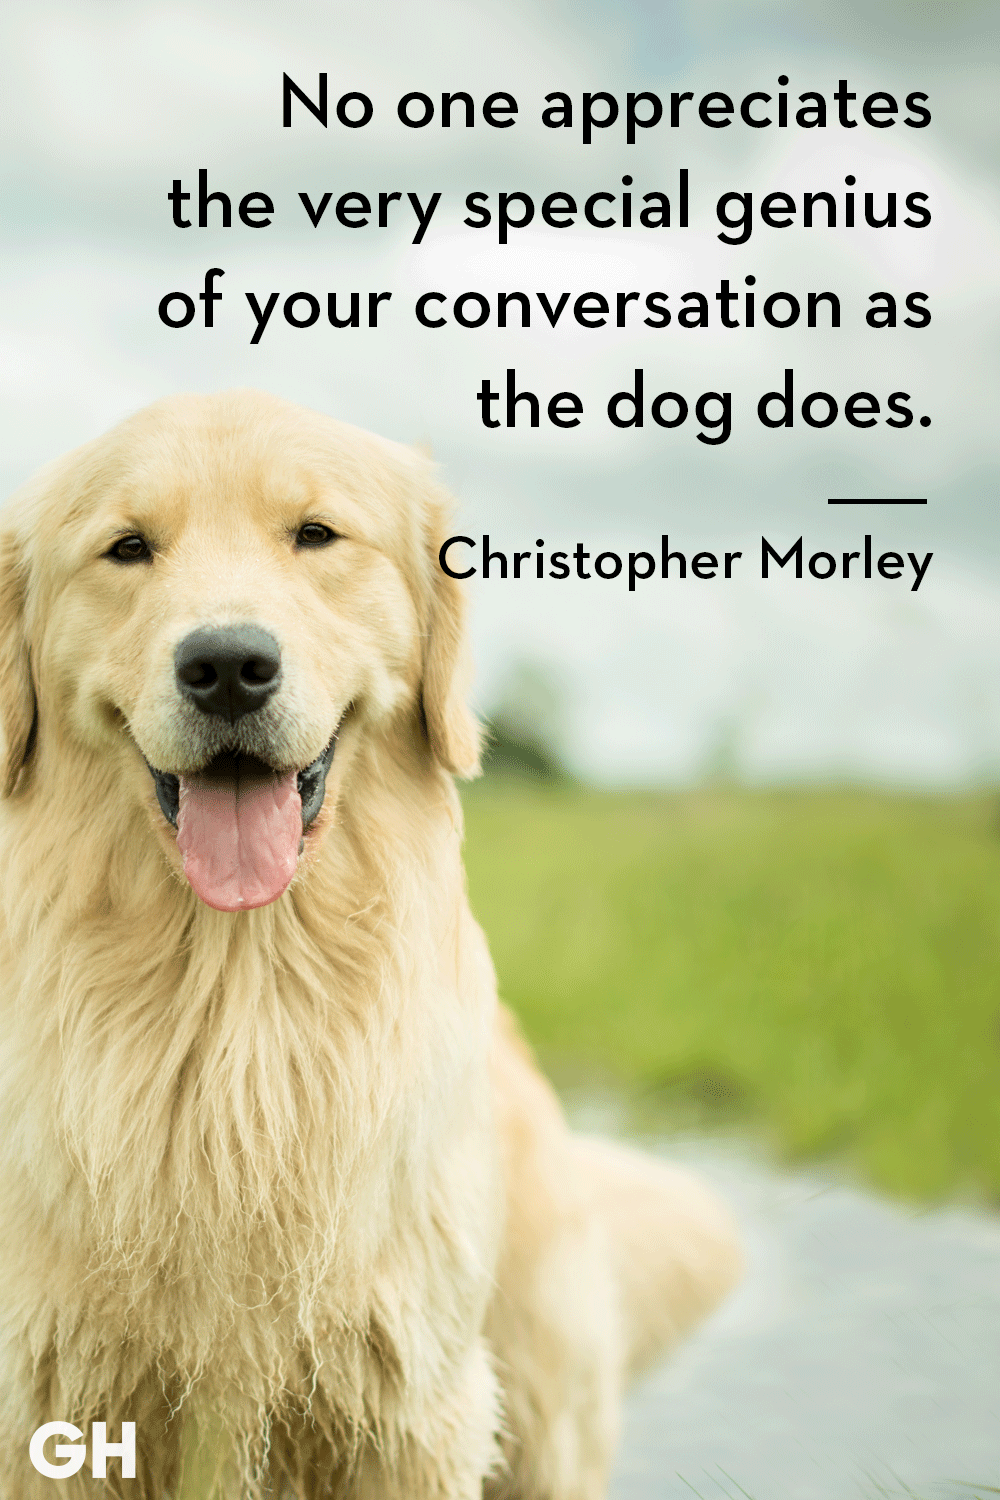 Quotes About Dogs | 30 Dog Quotes That Every Animal Lover Will Relate To Best Dog Quotes